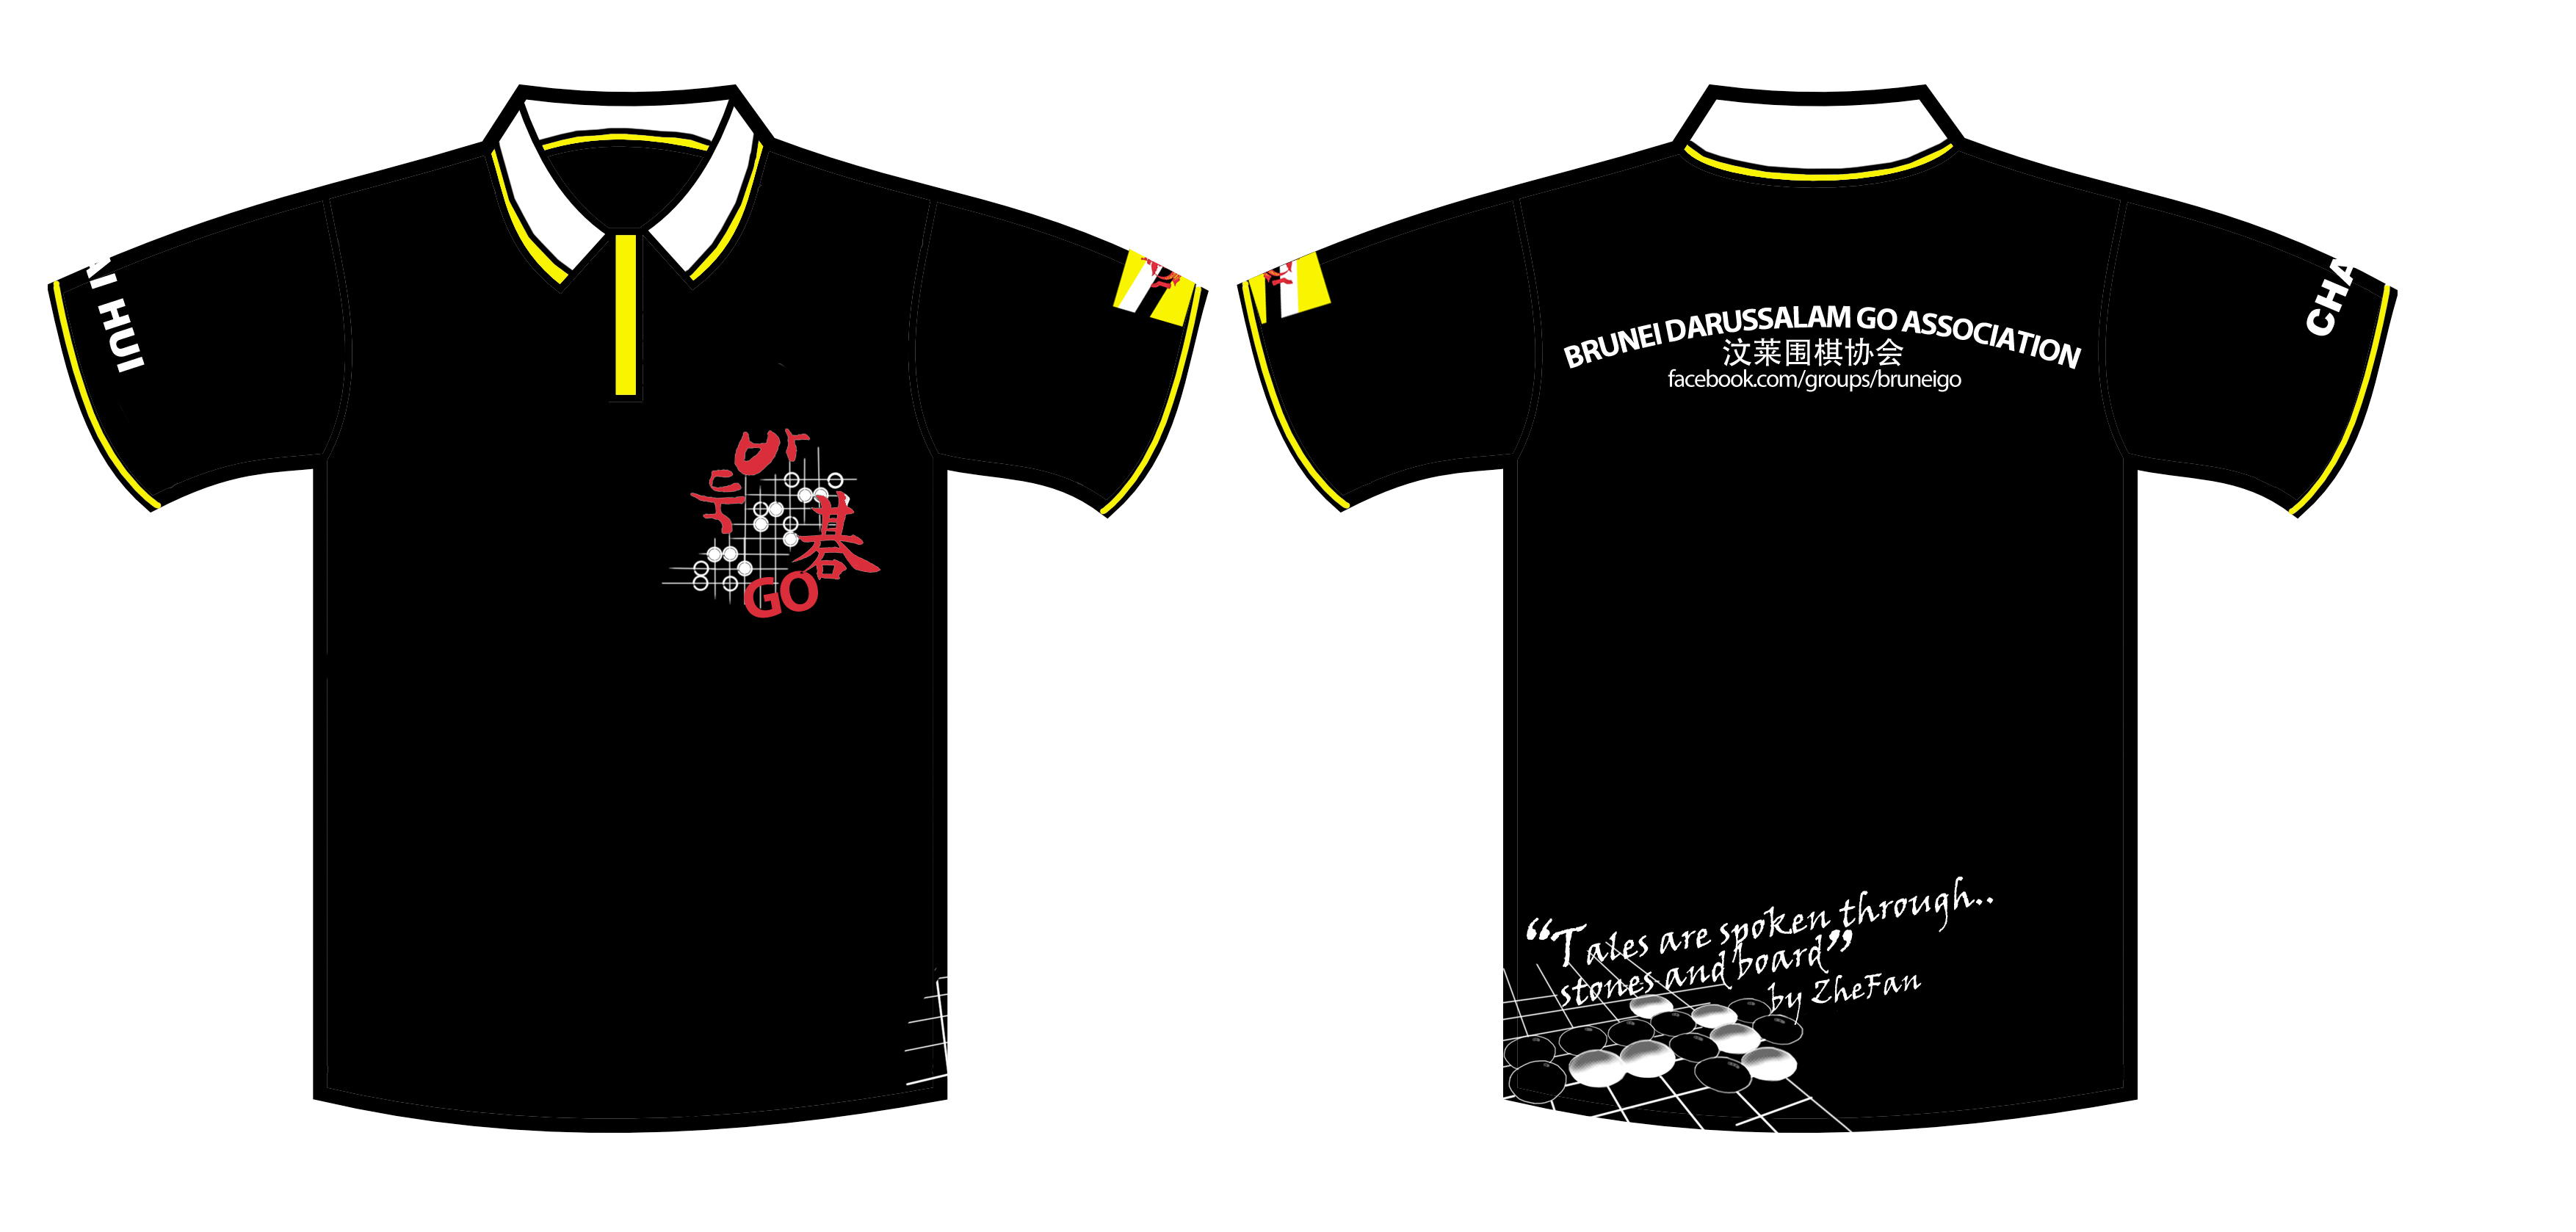 Prototype polo t shirt from brunei darussalam go for Polo t shirt design images